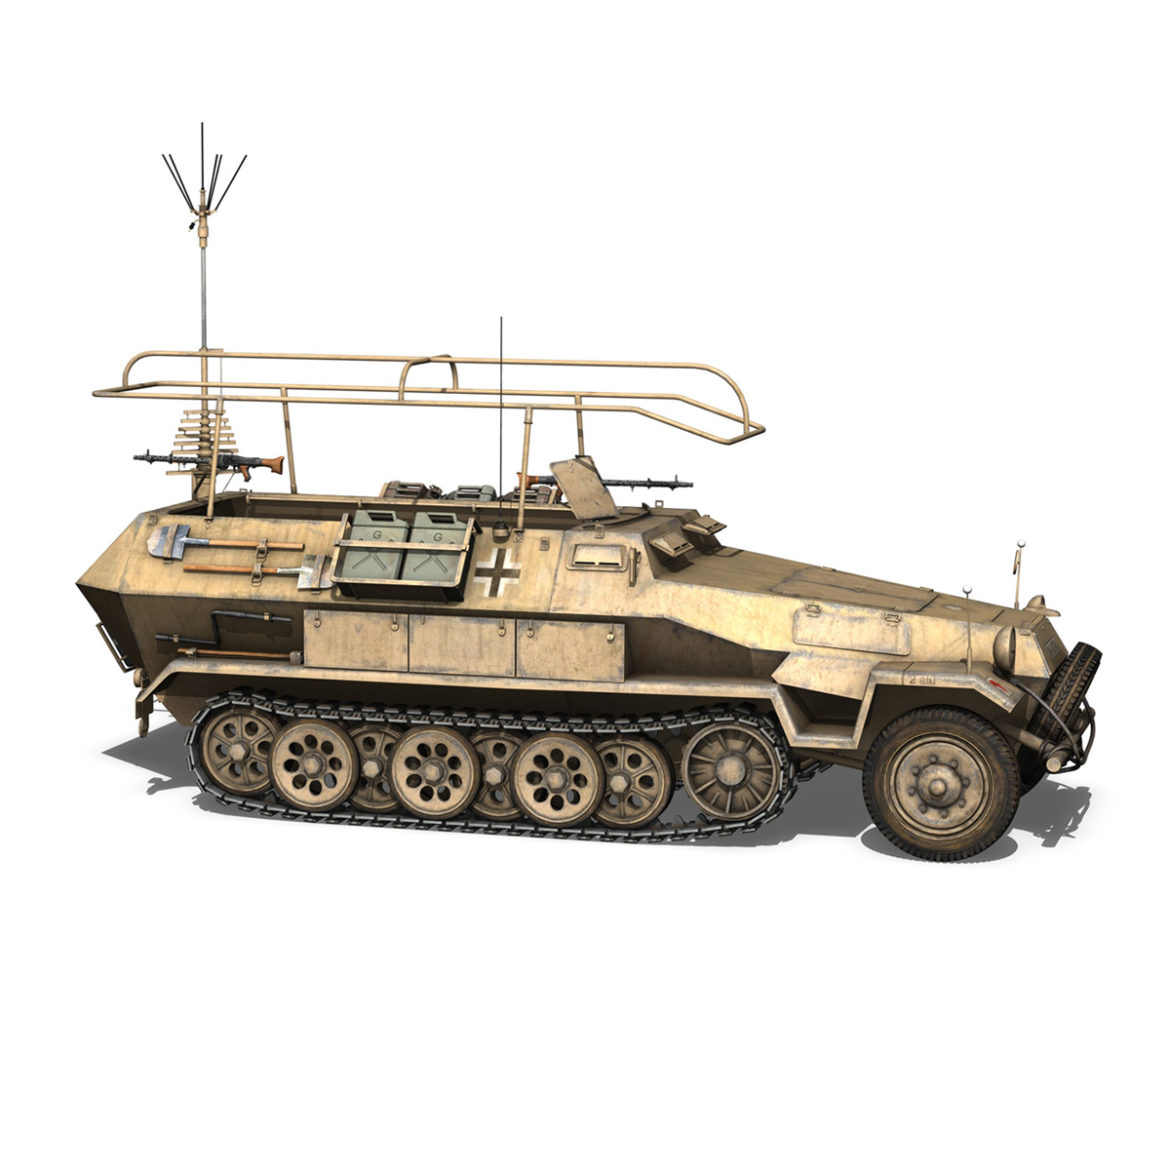 sdkfz 251 ausf.b – communications vehicle – 15pd 3d model 3ds fbx lwo lw lws obj c4d 305992